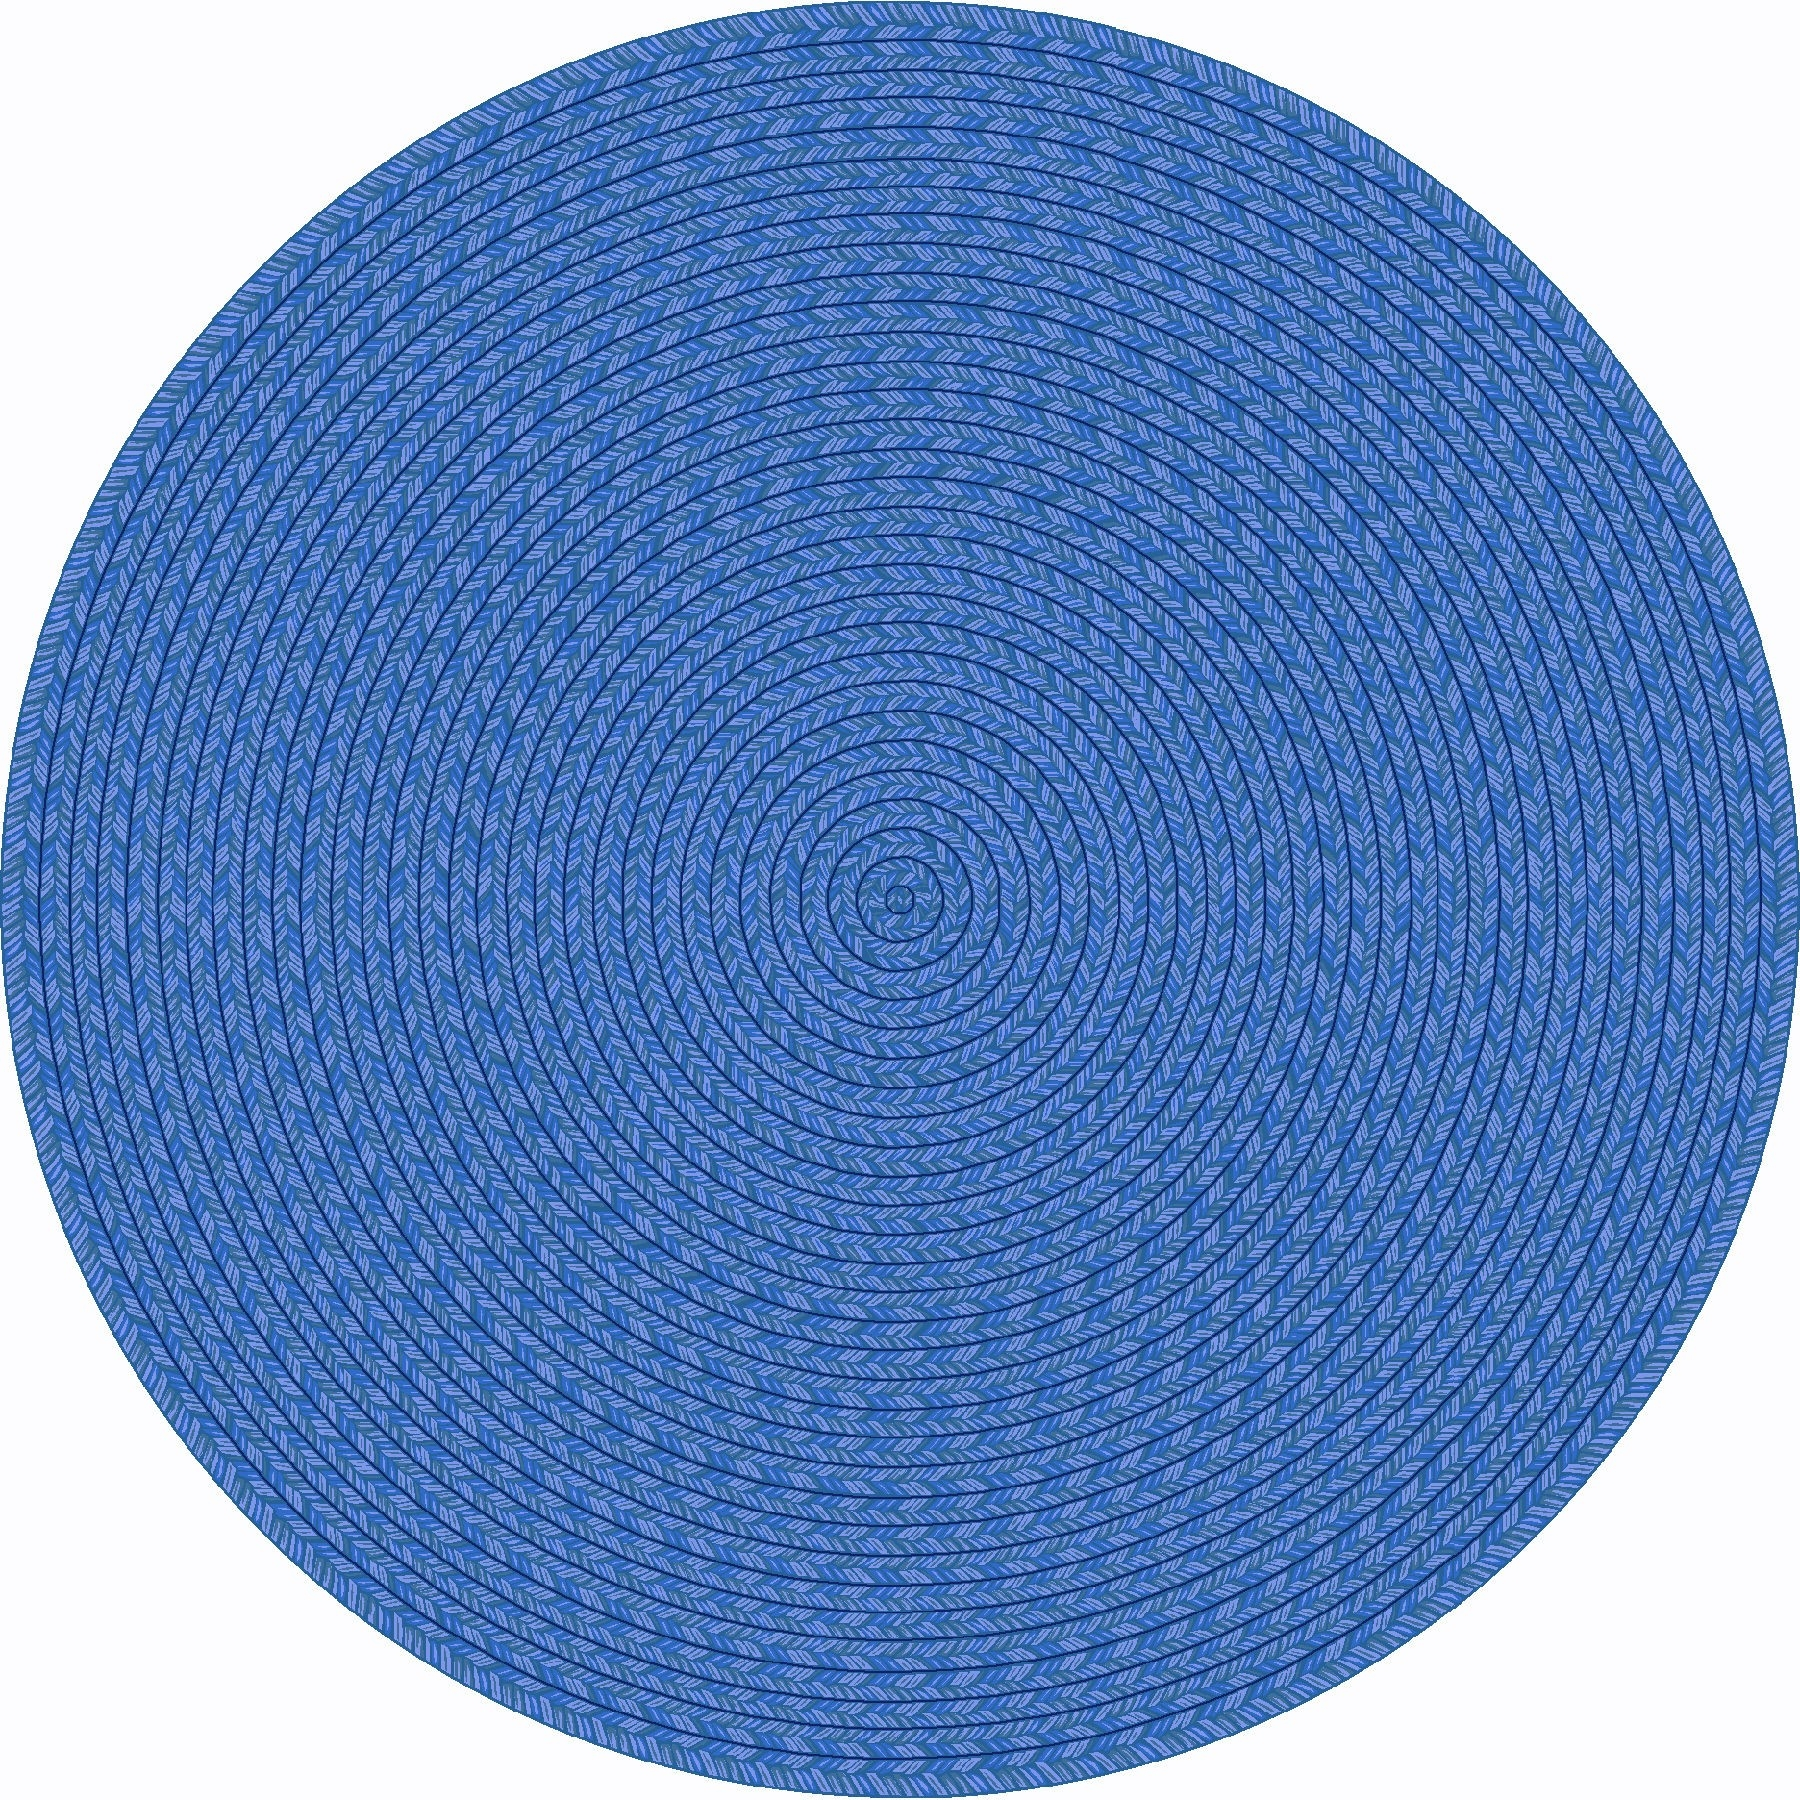 Rug Blue Round Rug Wuqiangco Inside Circular Carpets (Image 13 of 15)